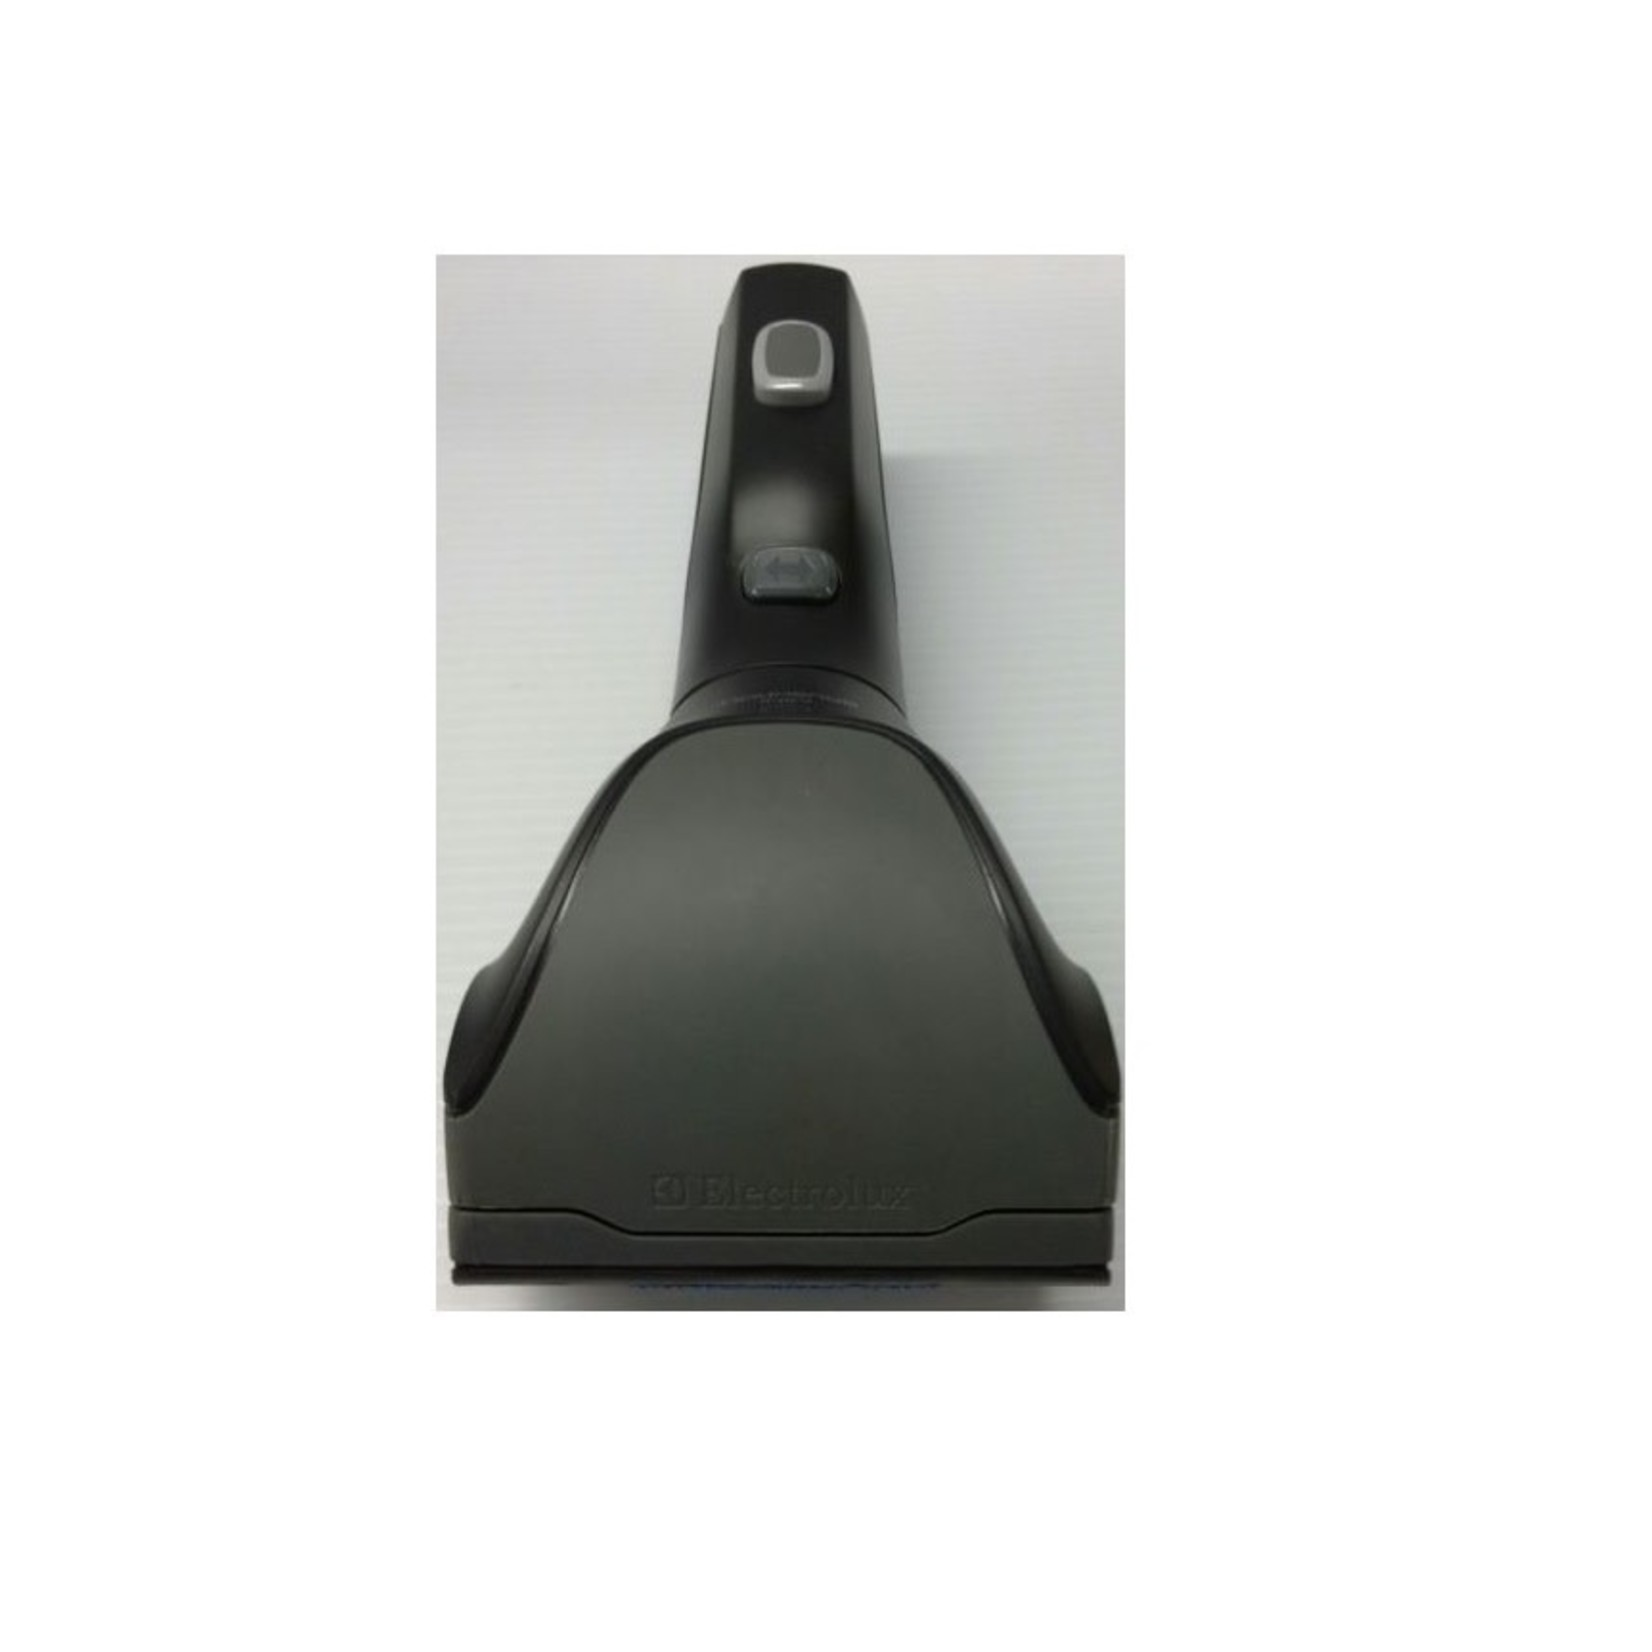 BEAM Beam @ Hand Tool - Fits 2G Only